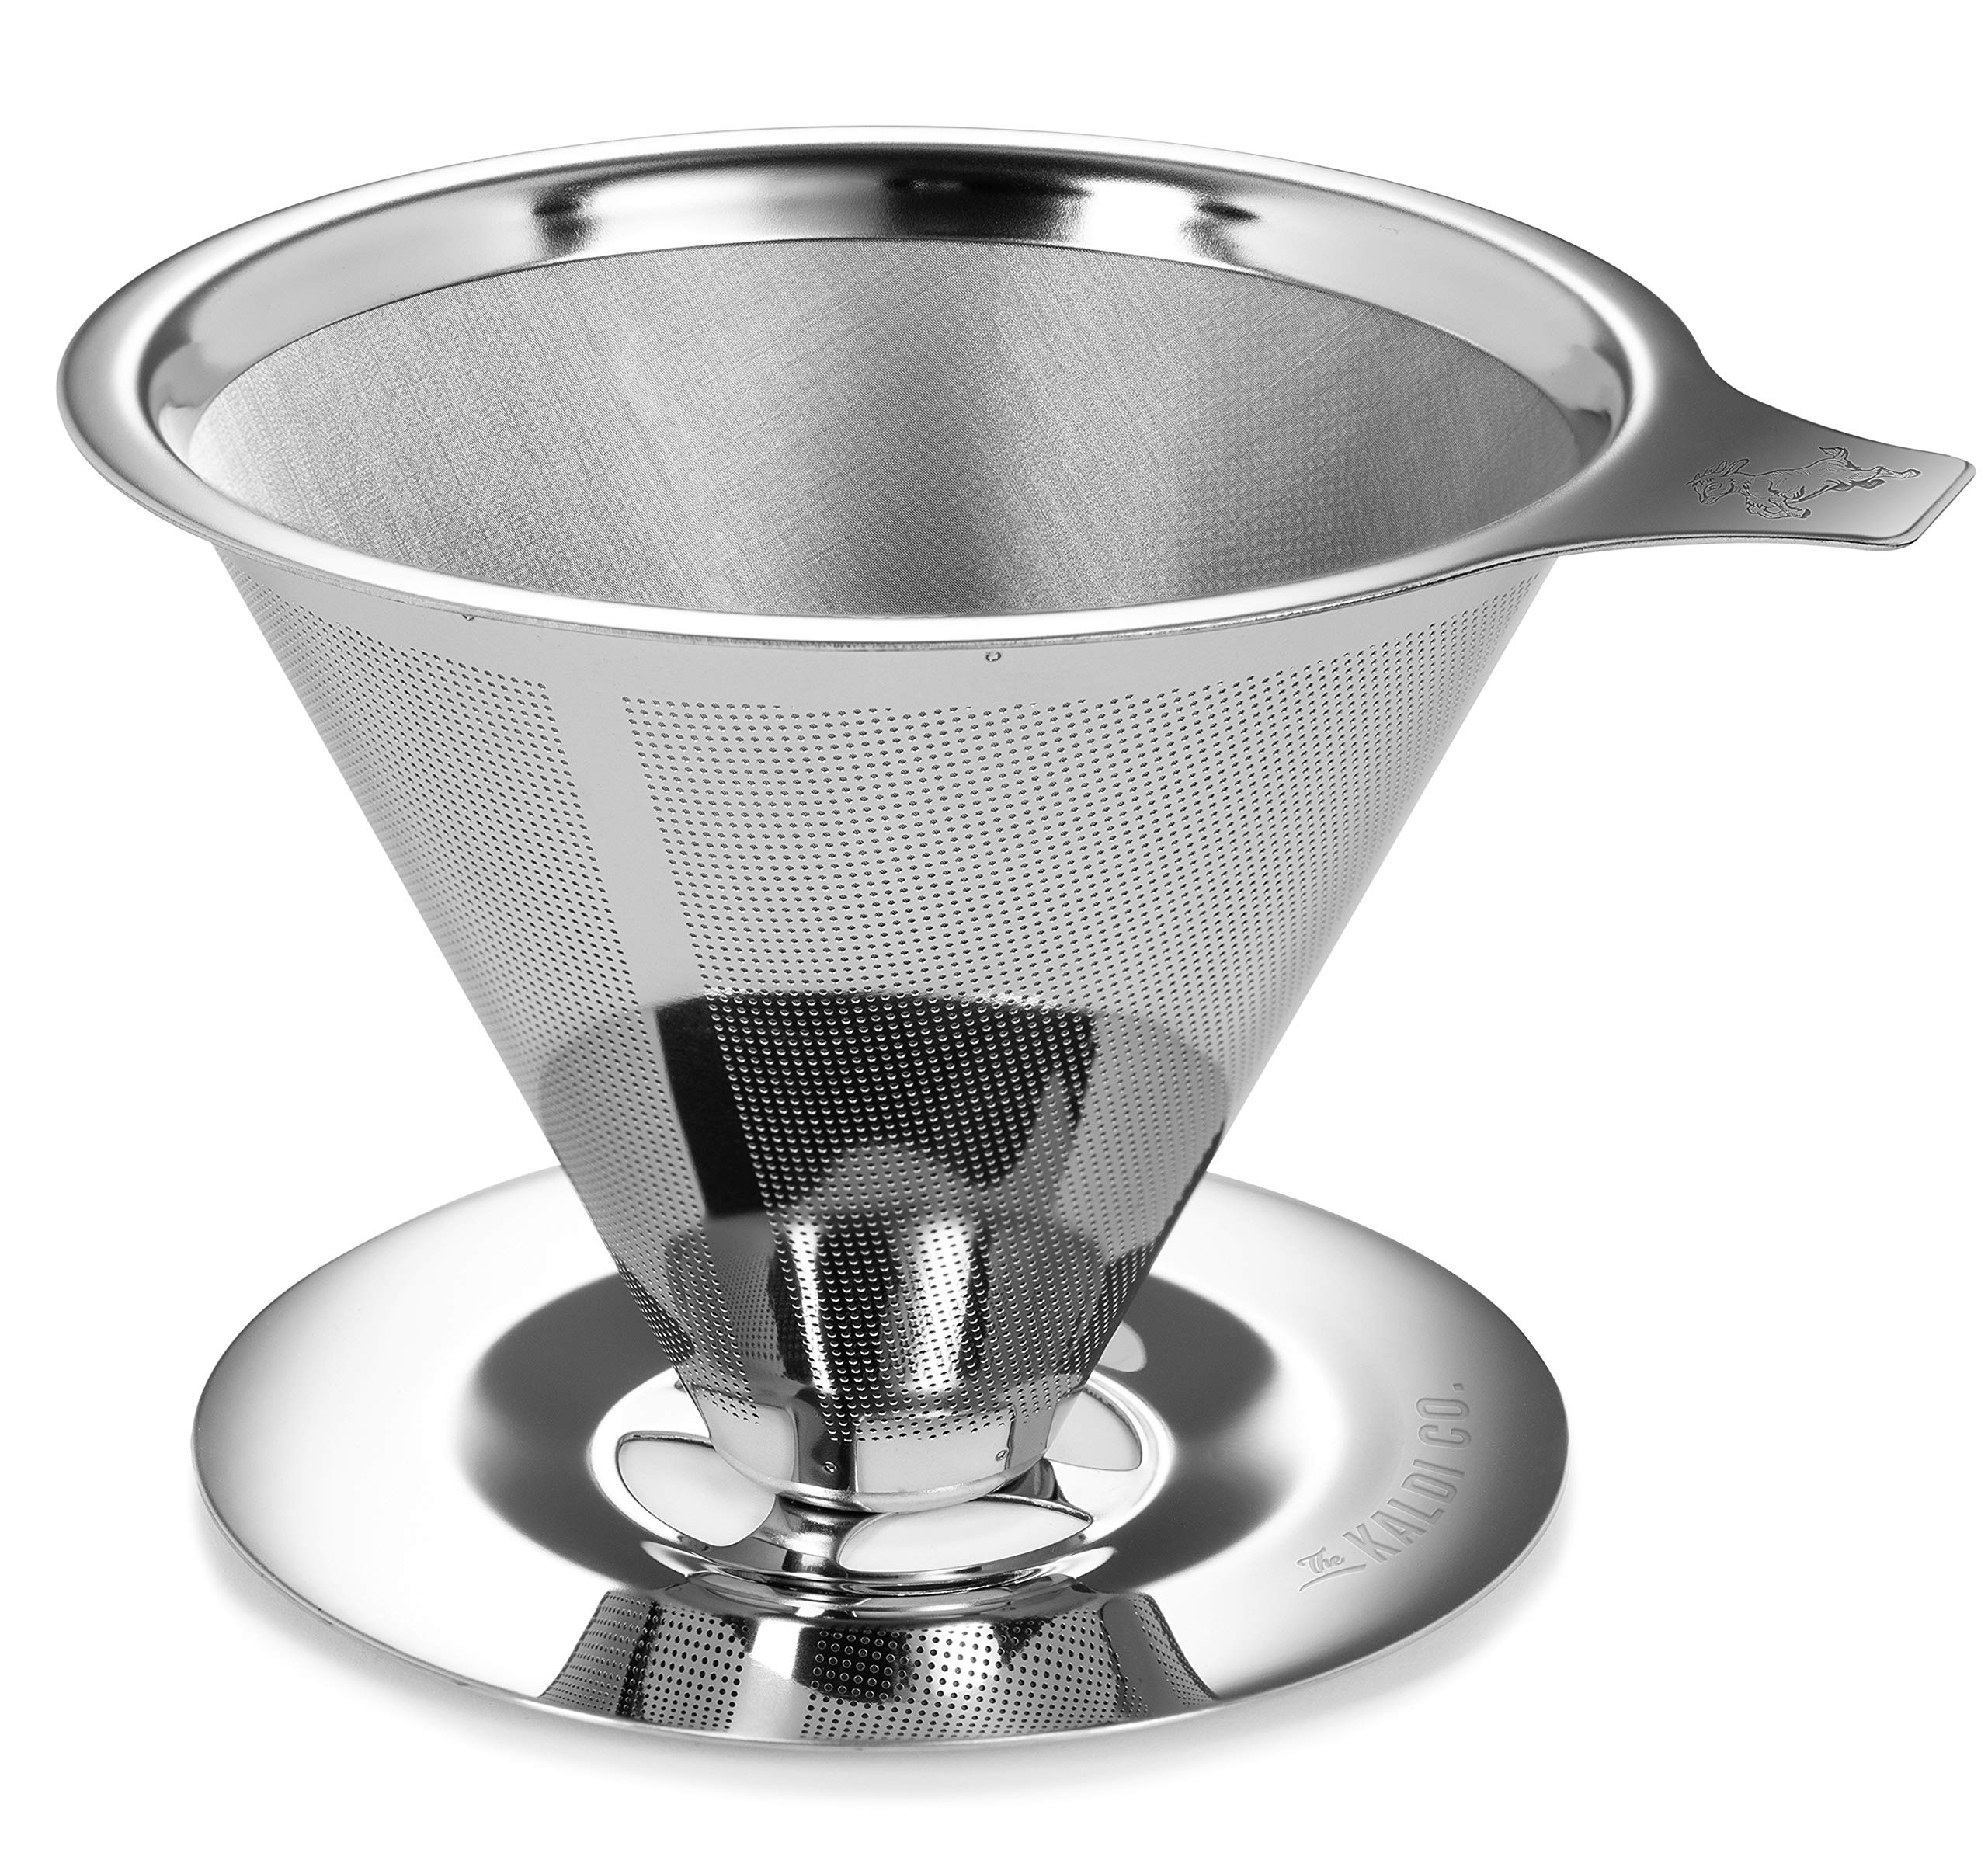 Stainless Steel Pour Over Coffee Dripper, Includes FREE Travel Pouch, Premium Grade Stainless Steel 304 Drip Cone with Ultra Fine Mesh Construction. by The Kaldi Co.